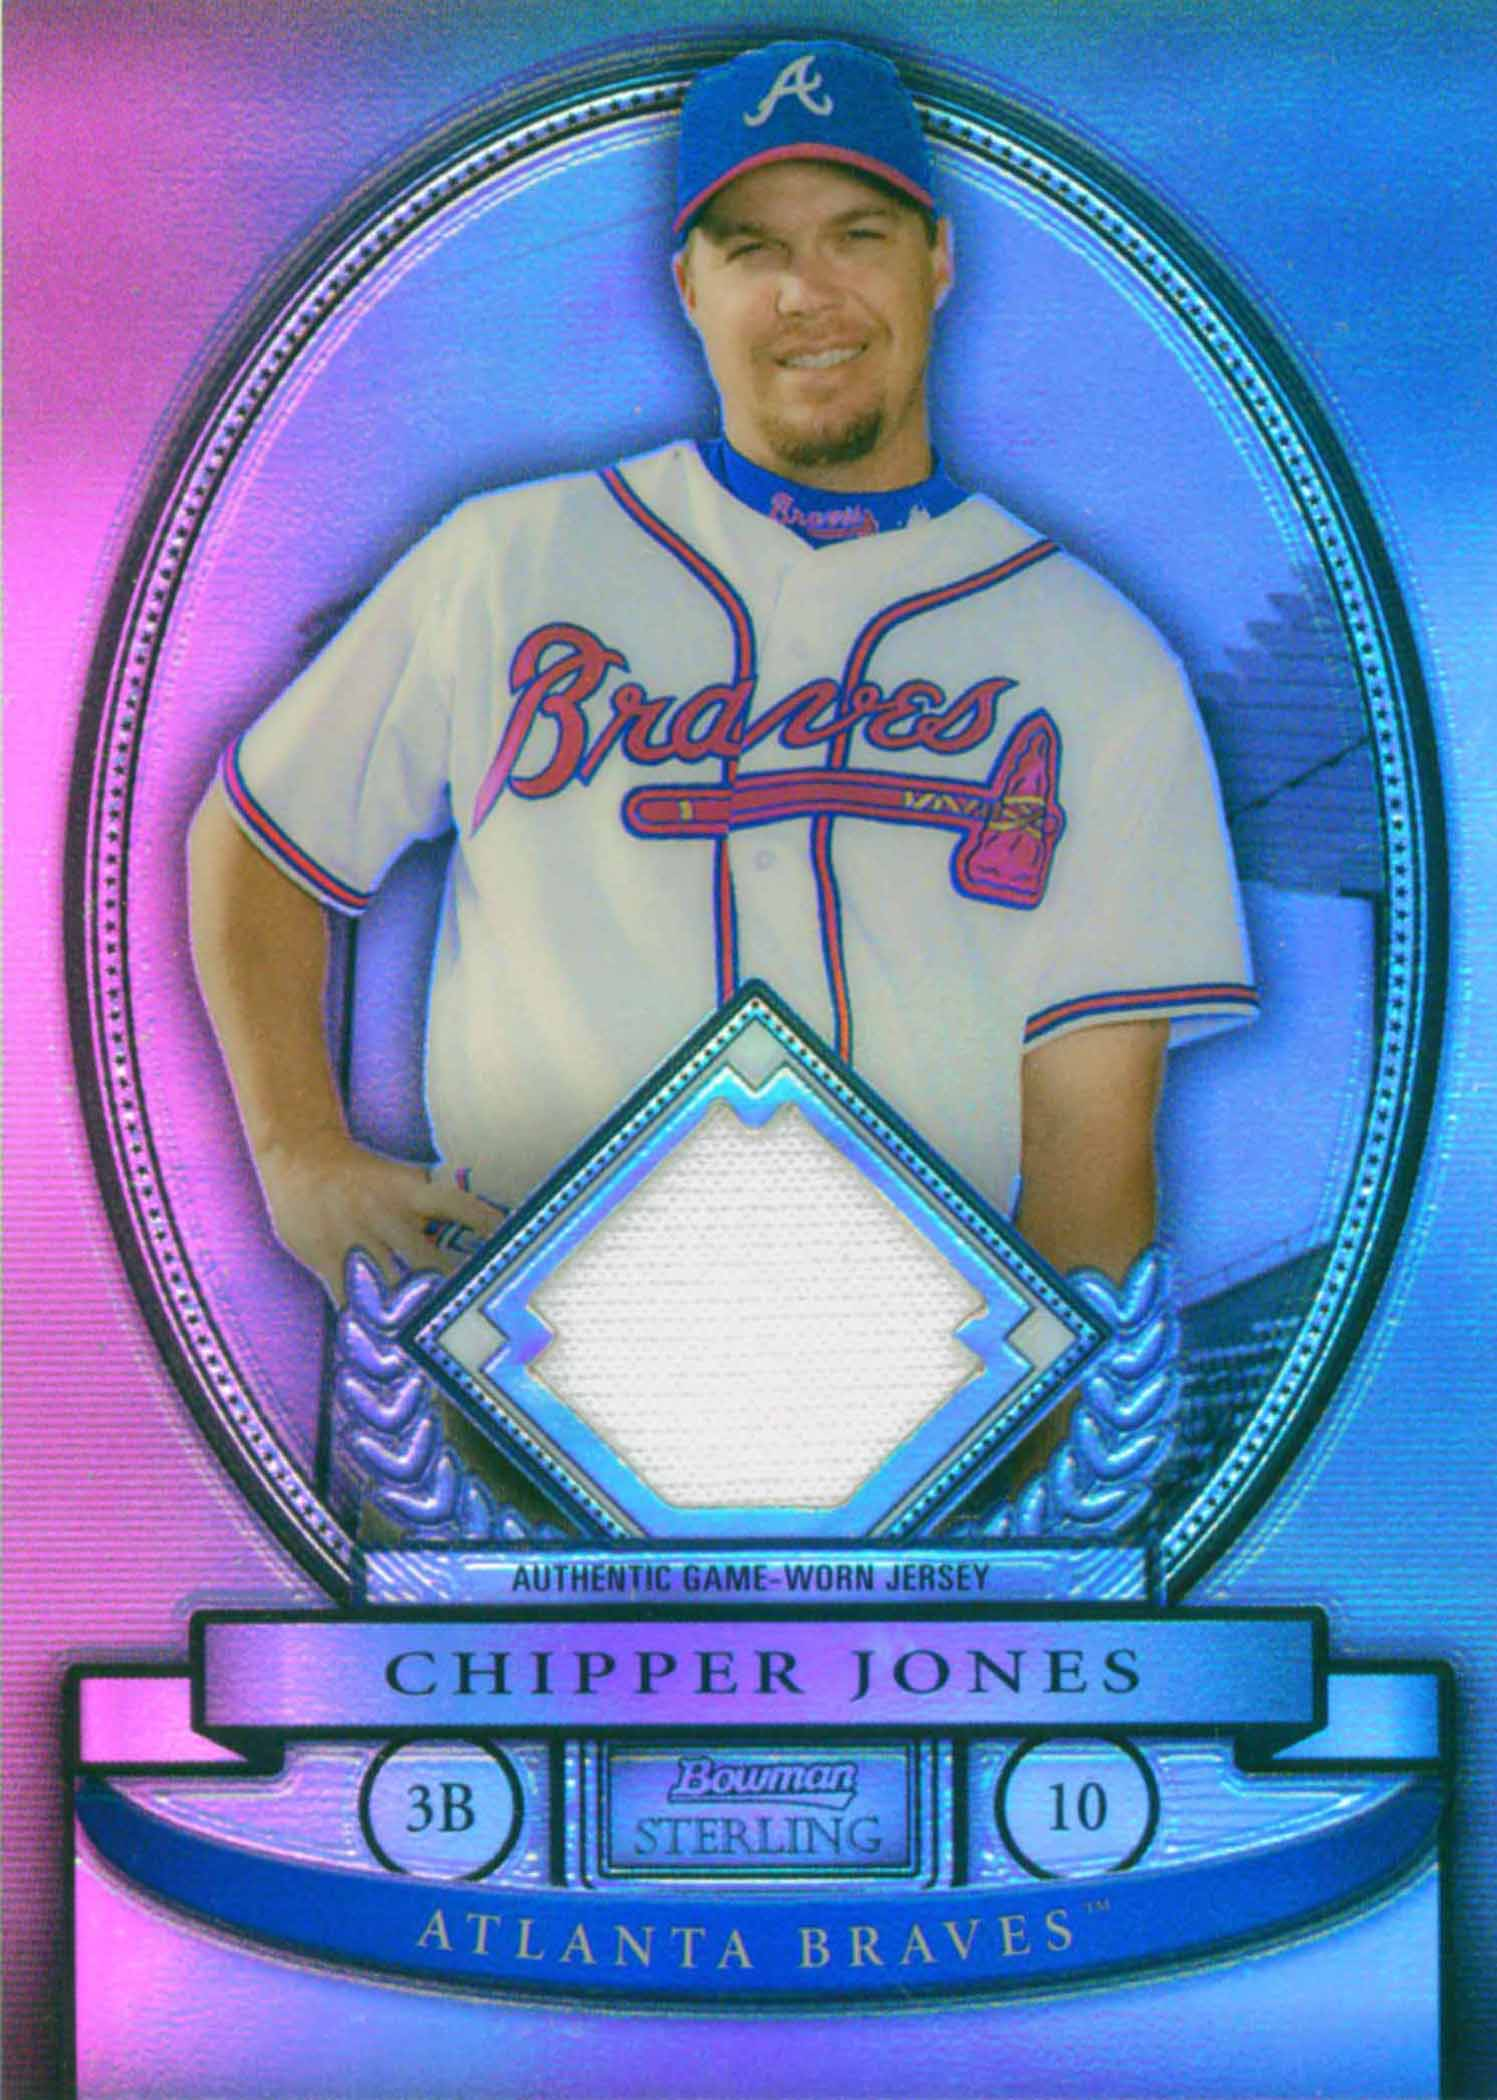 2008 Bowman Sterling Refractors Jersey